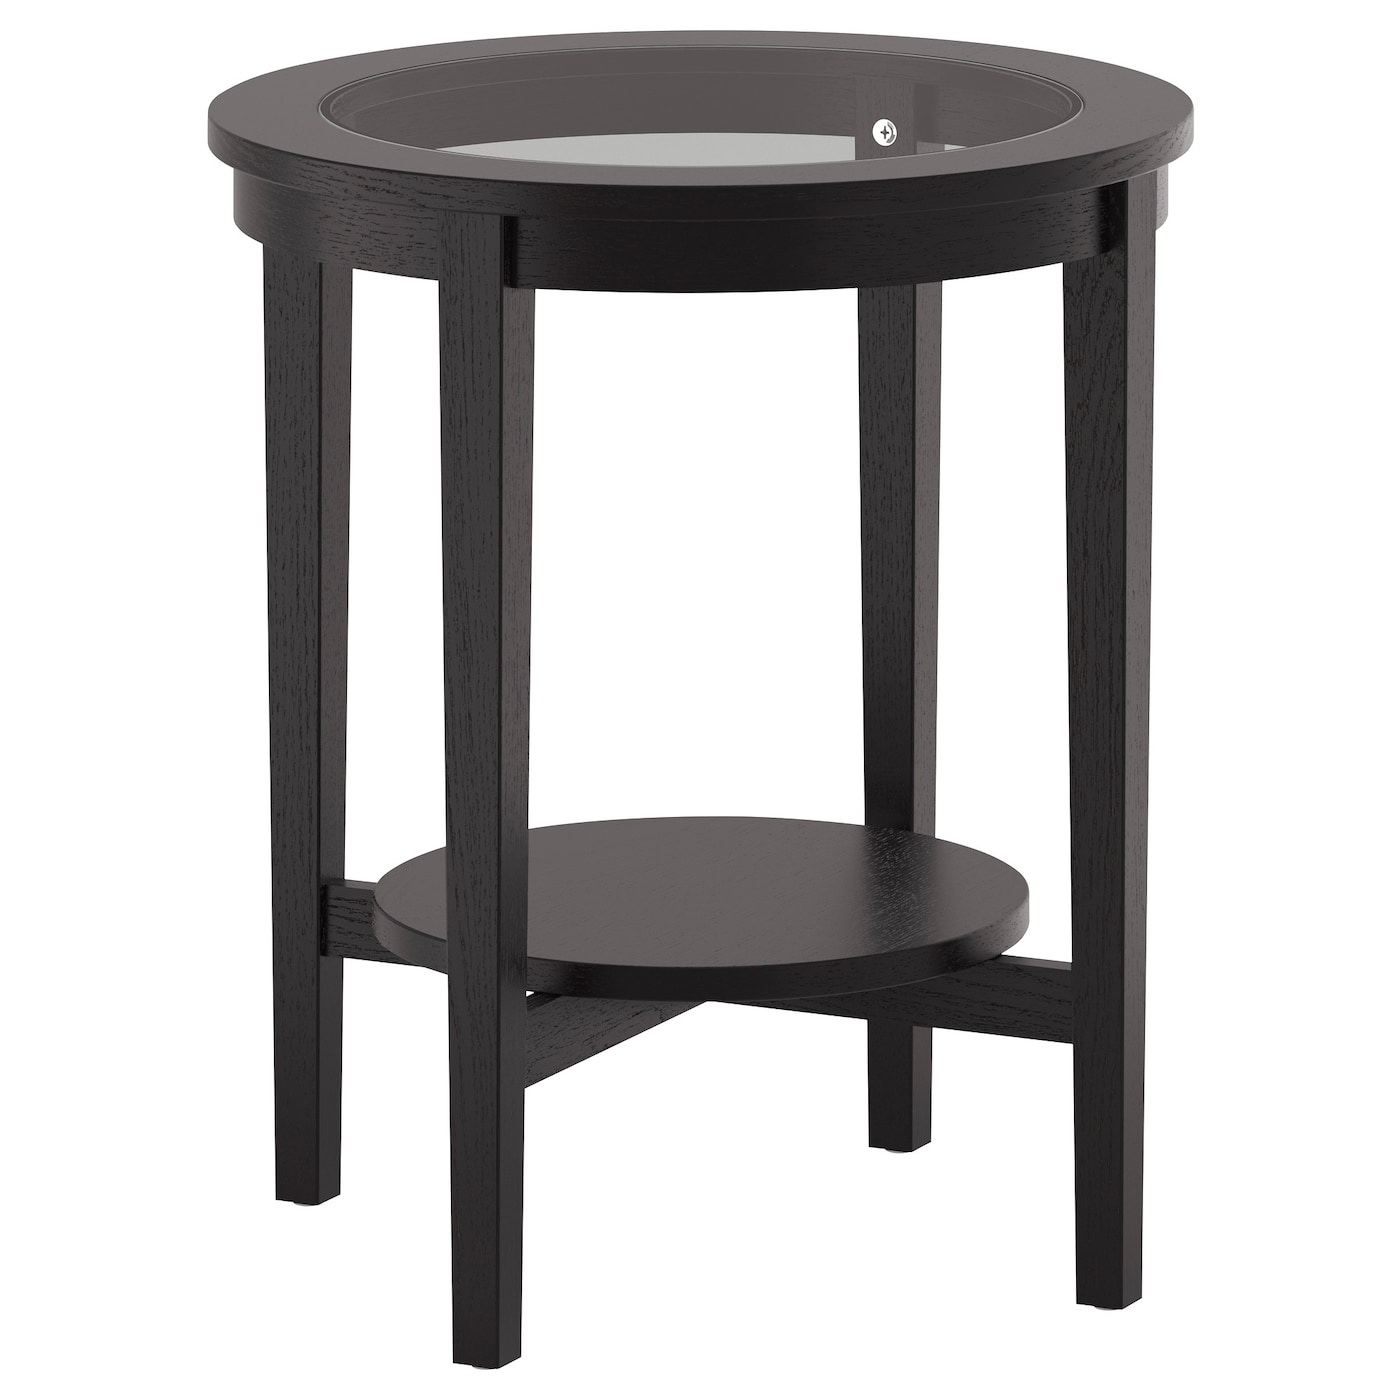 Malmsta table d 39 appoint brun noir 54 cm ikea - Ikea table noire ...